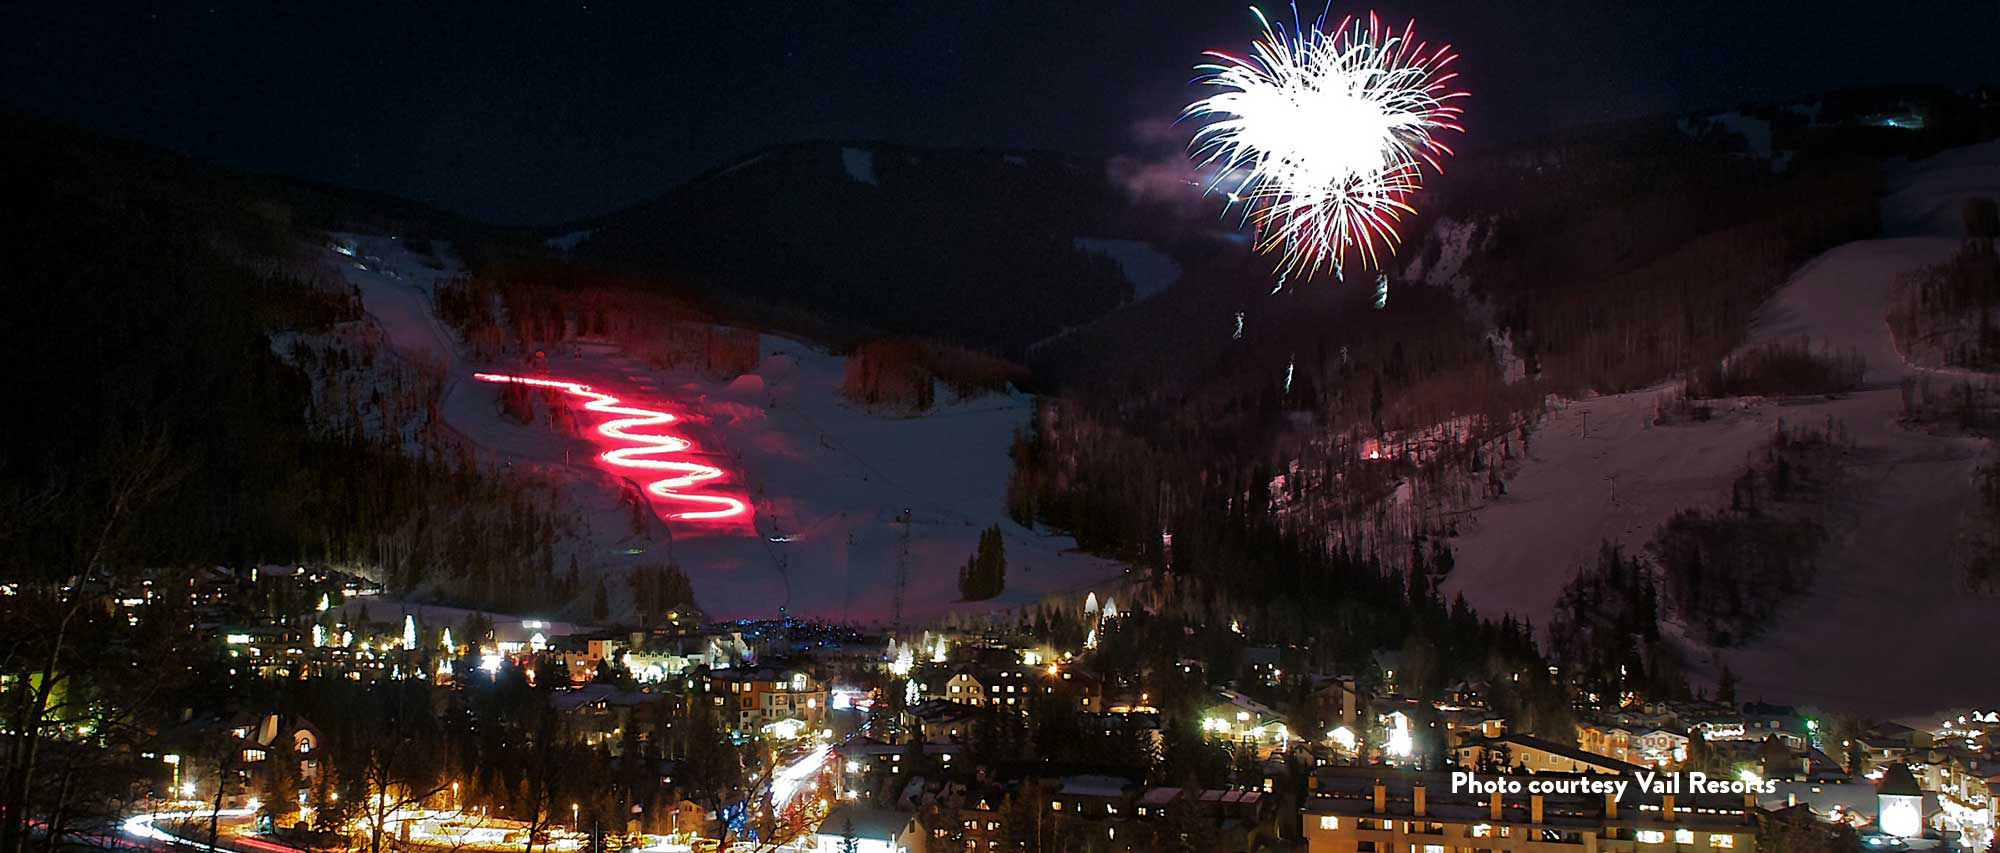 Holidays in Vail. Photo courtesy Vail Resorts.